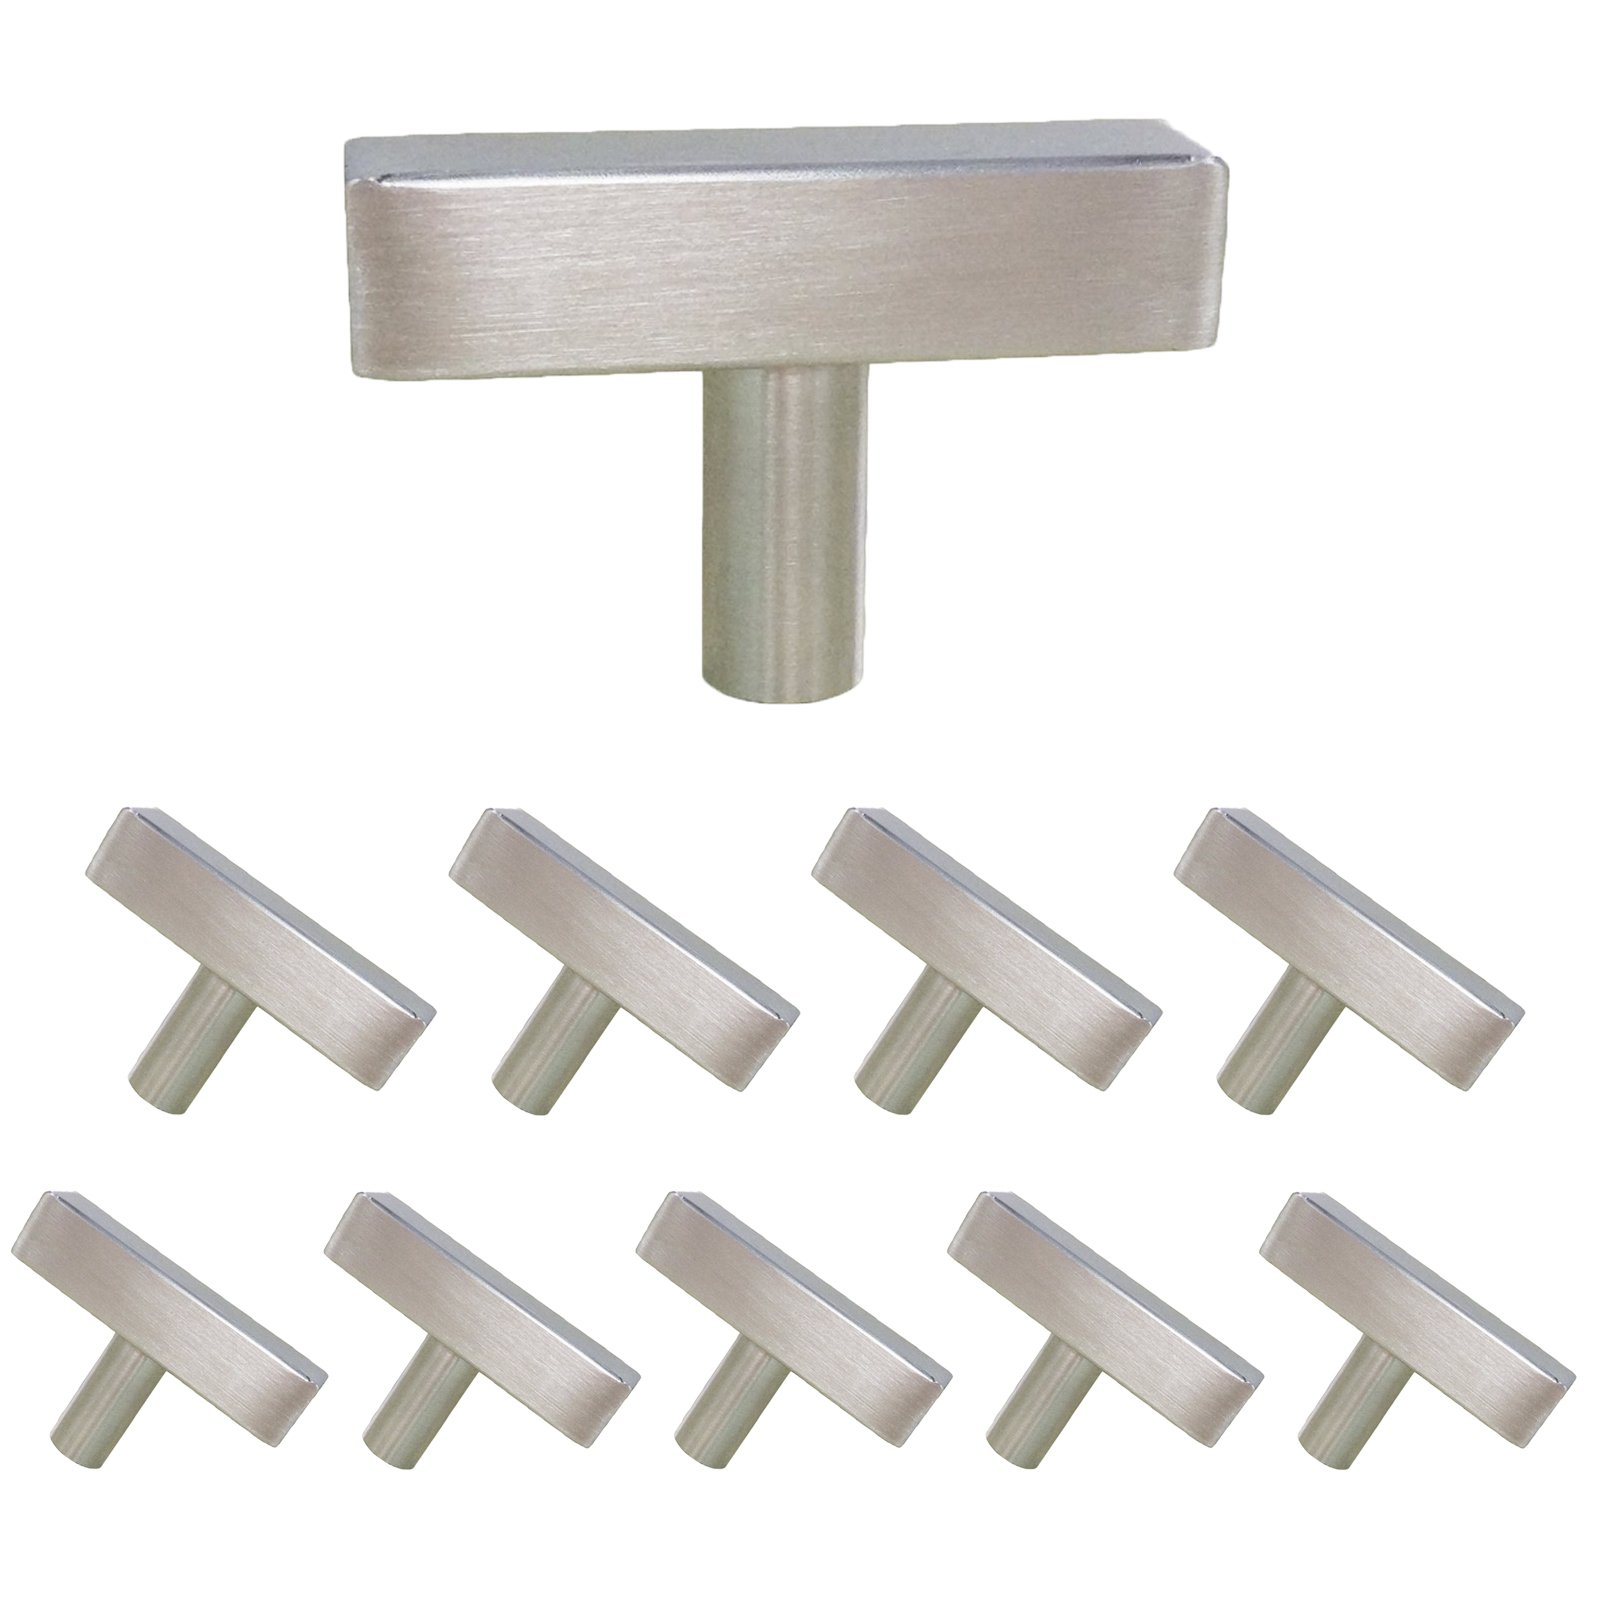 Square Single Hole Cabinet Pulls and Knobs Brushed Nickel Stainless Steel 10 Pack-Homdiy HDJ22SN 2in 50mm Length T Bar Kitchen Cabinet Door Handles